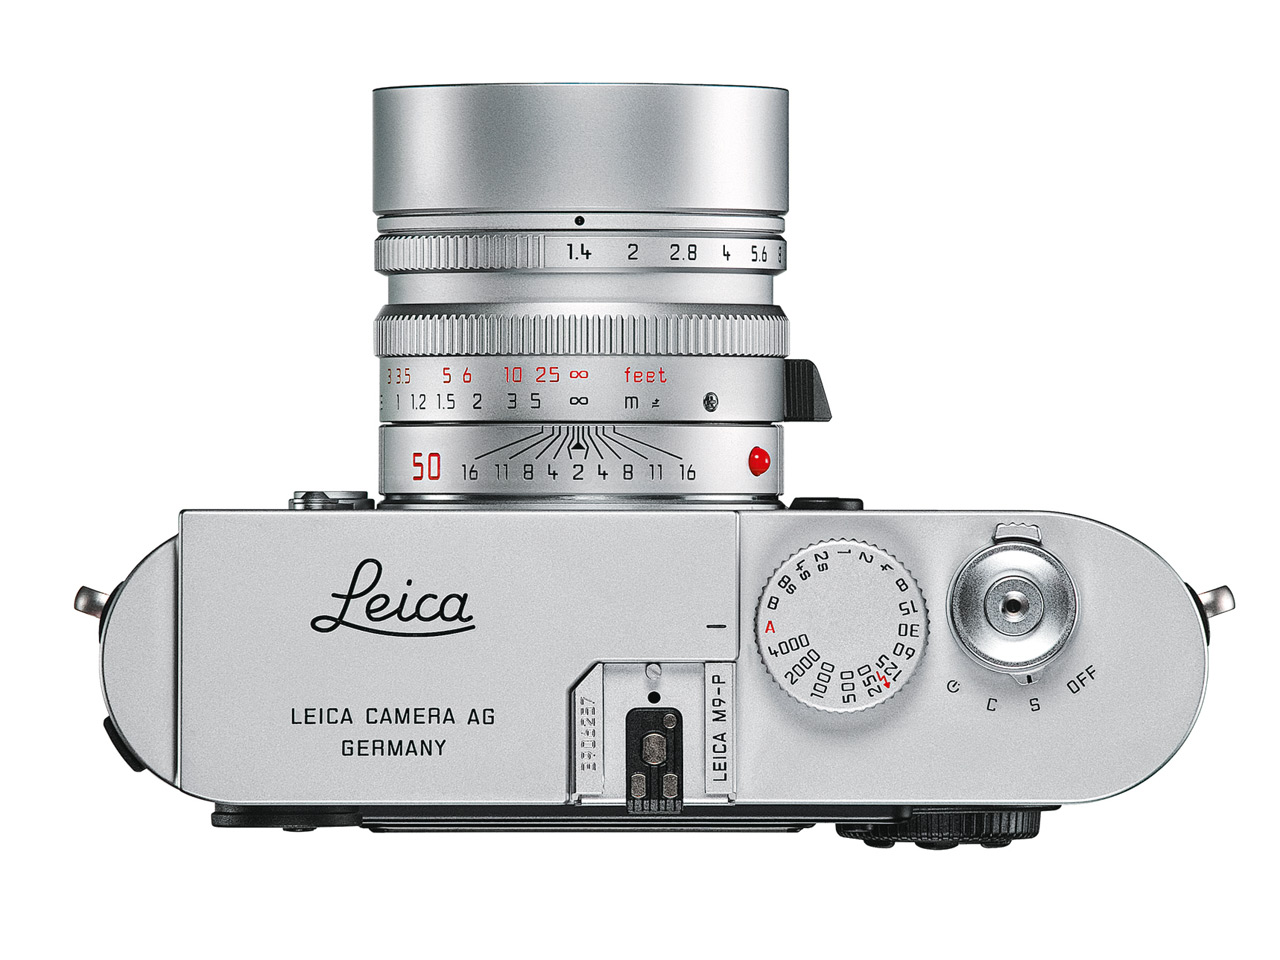 leibal_m9-p-white-limited-edition_leica_2